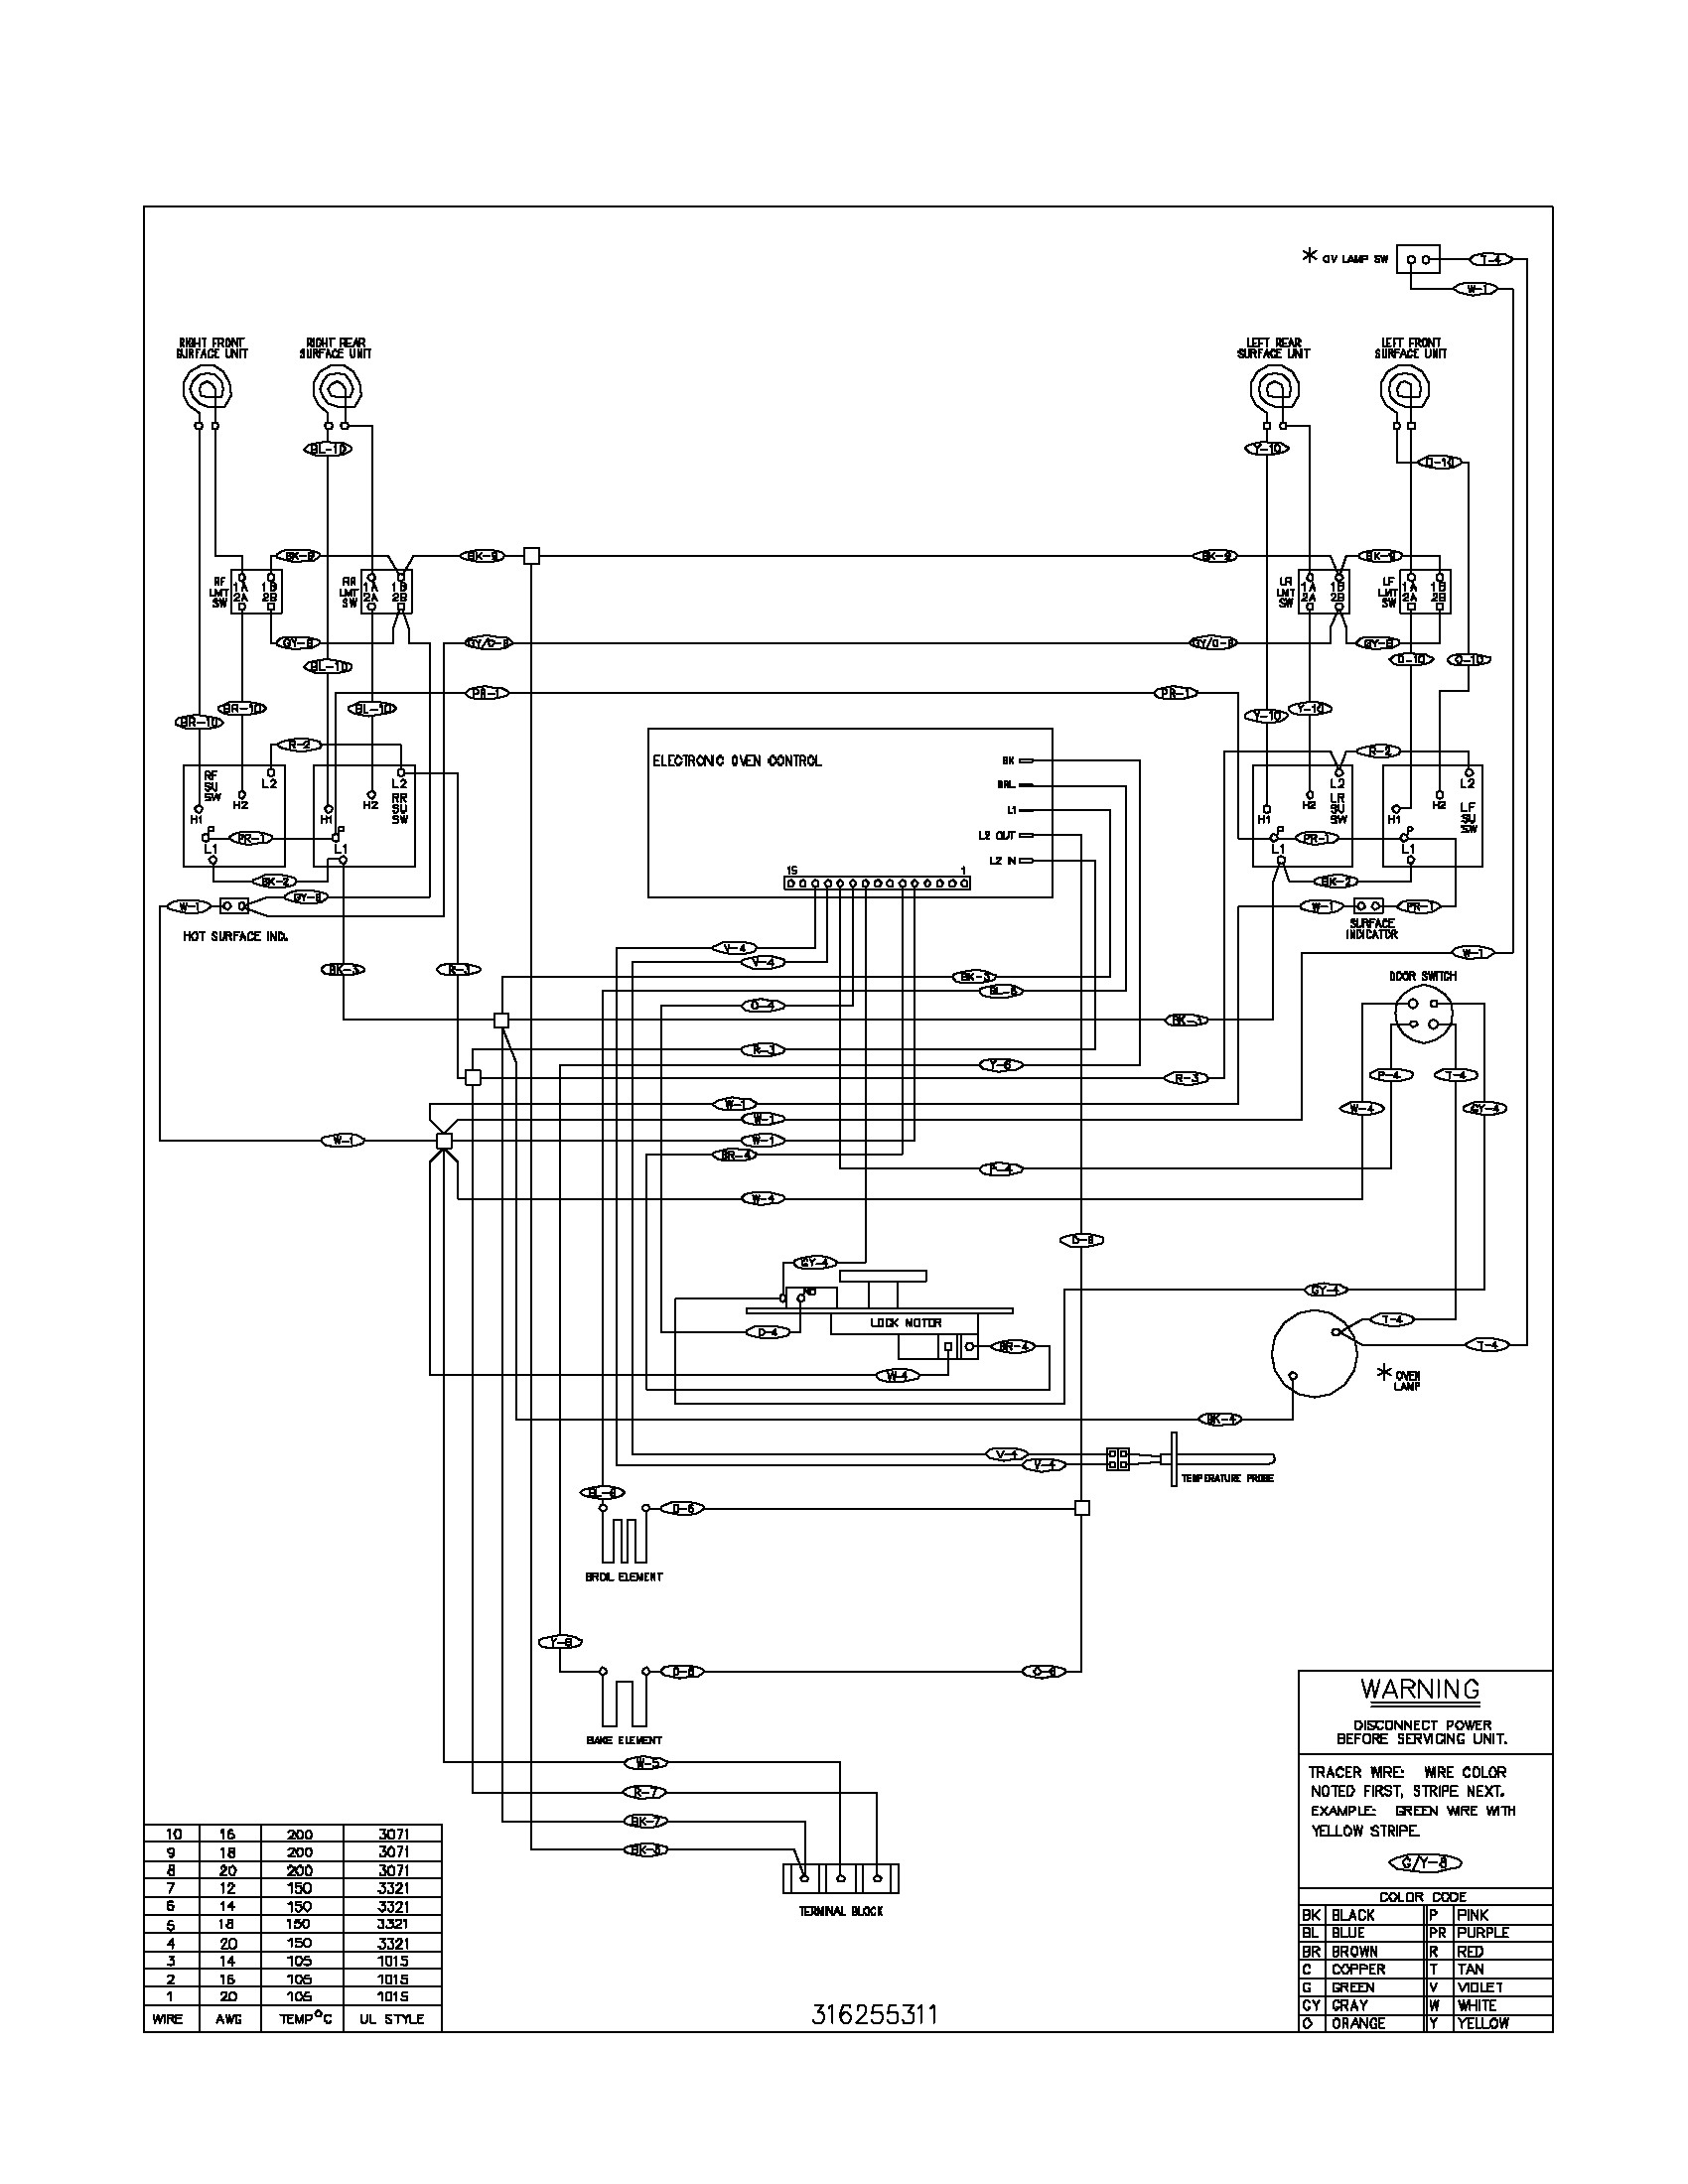 wiring diagrams frigidaire gas stoves wiring diagram services u2022 rh wiringdiagramguide services